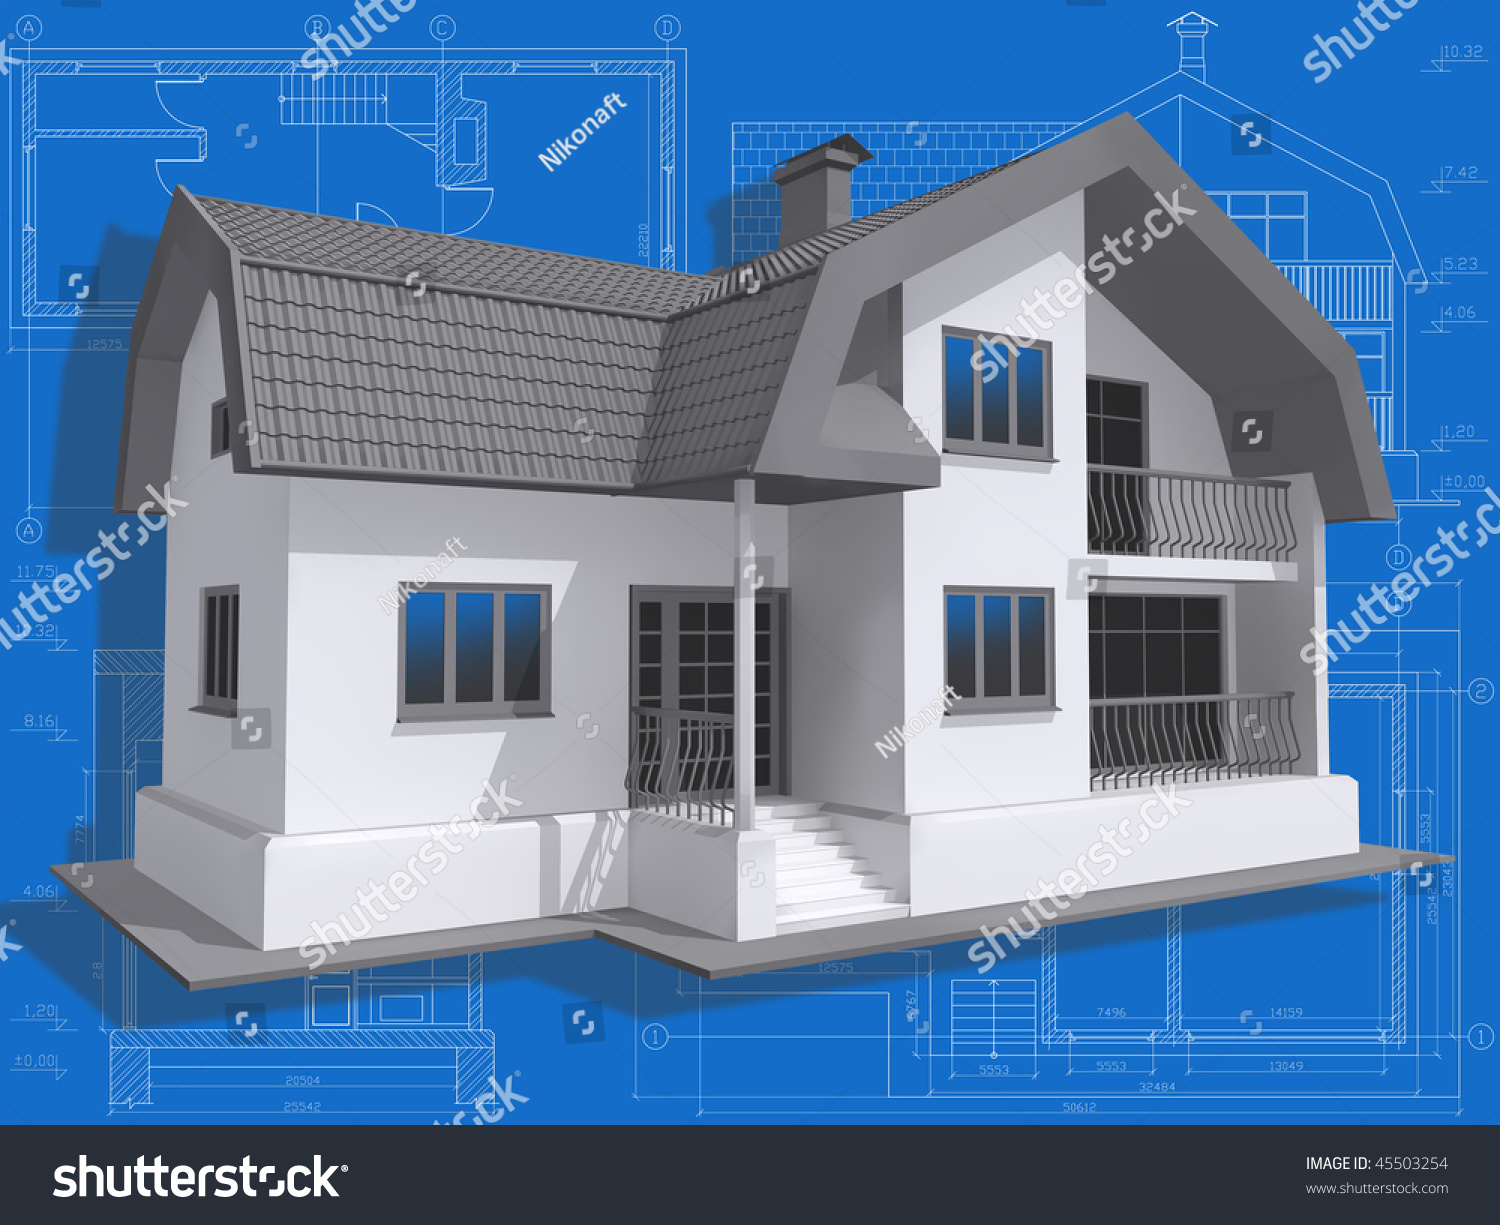 3d isometric view of residential house on architect u0026 39 s